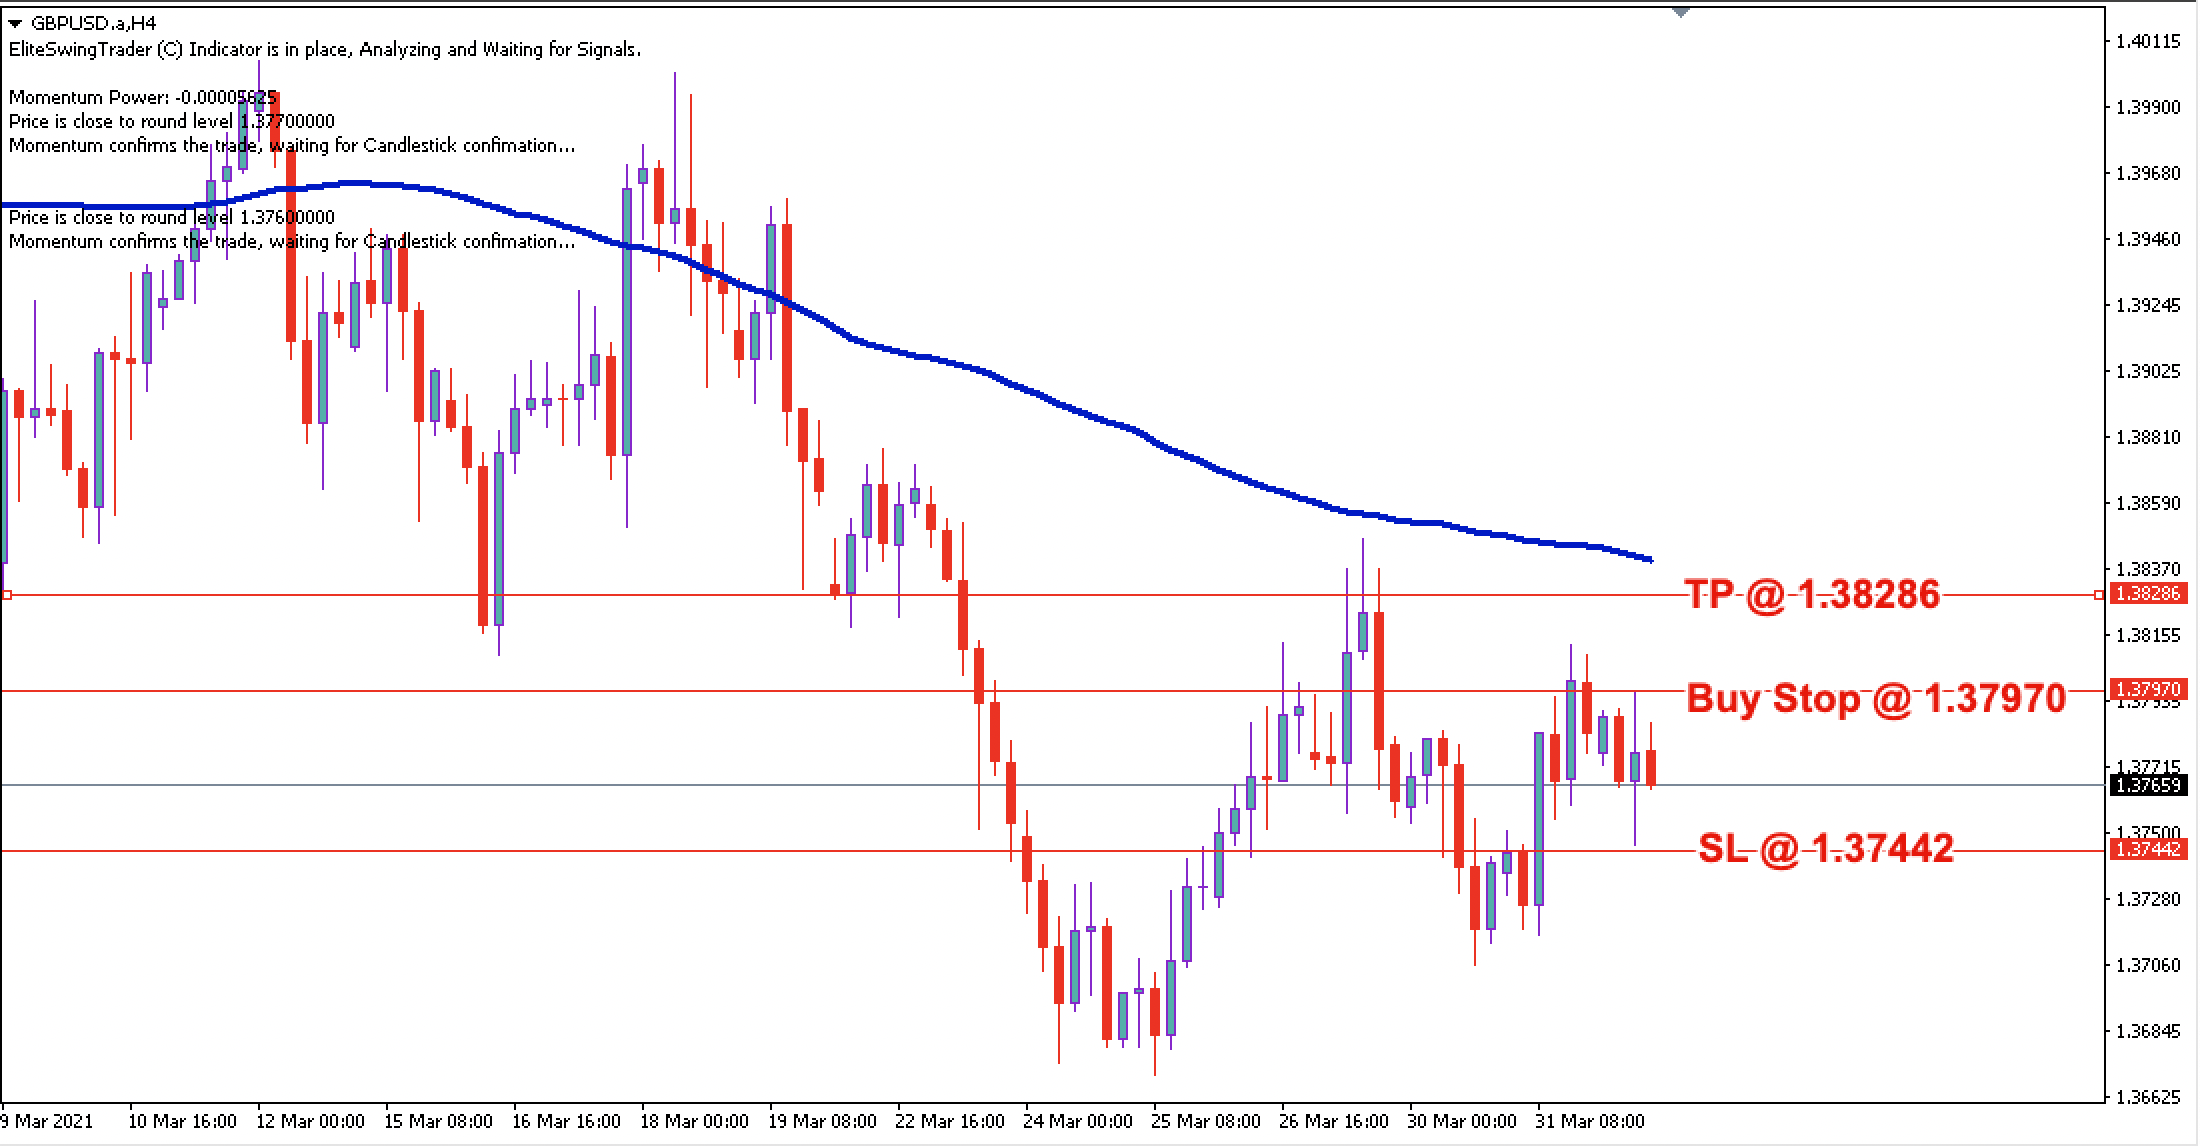 GBP/USD Daily Price Forecast - 1st April 2021